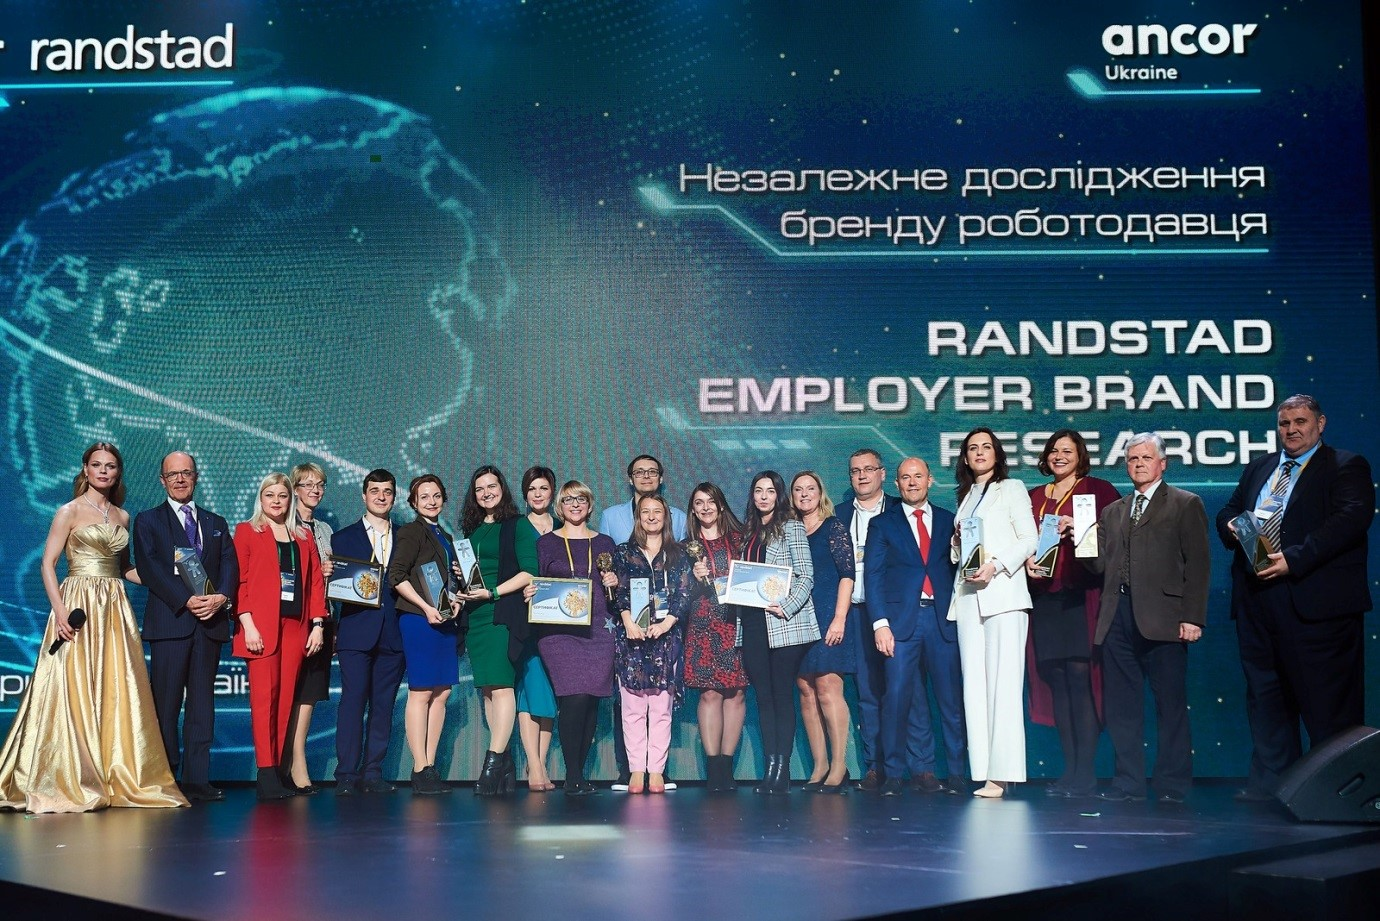 Randstad Employer Brand_3